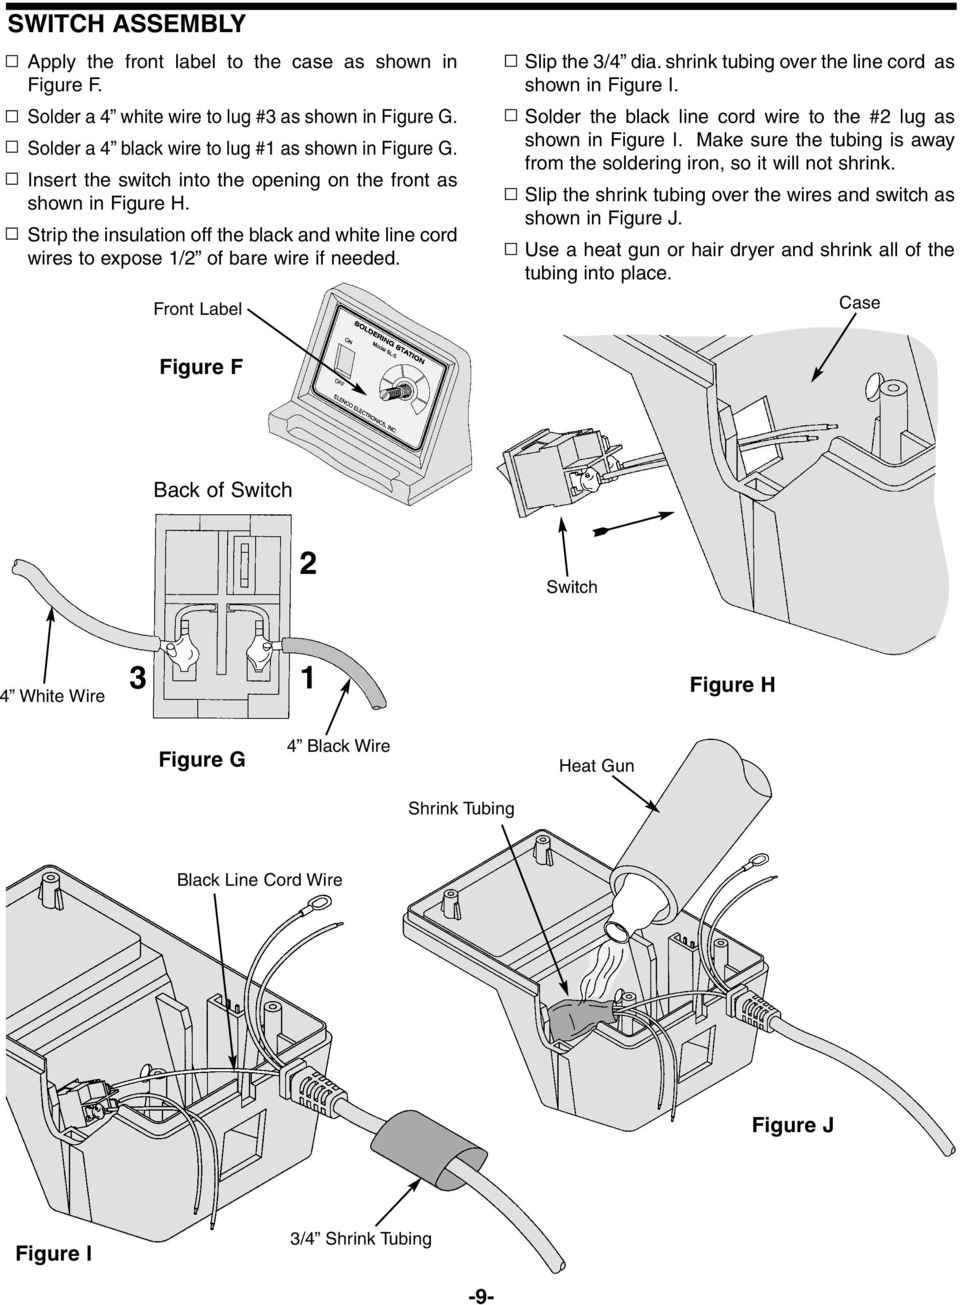 Deluxe Electronic Soldering Station Kit Pdf Wiring A Switch With Two Black Wires Shrink Tubing Over The Line Cord As Shown In Figure I Solder